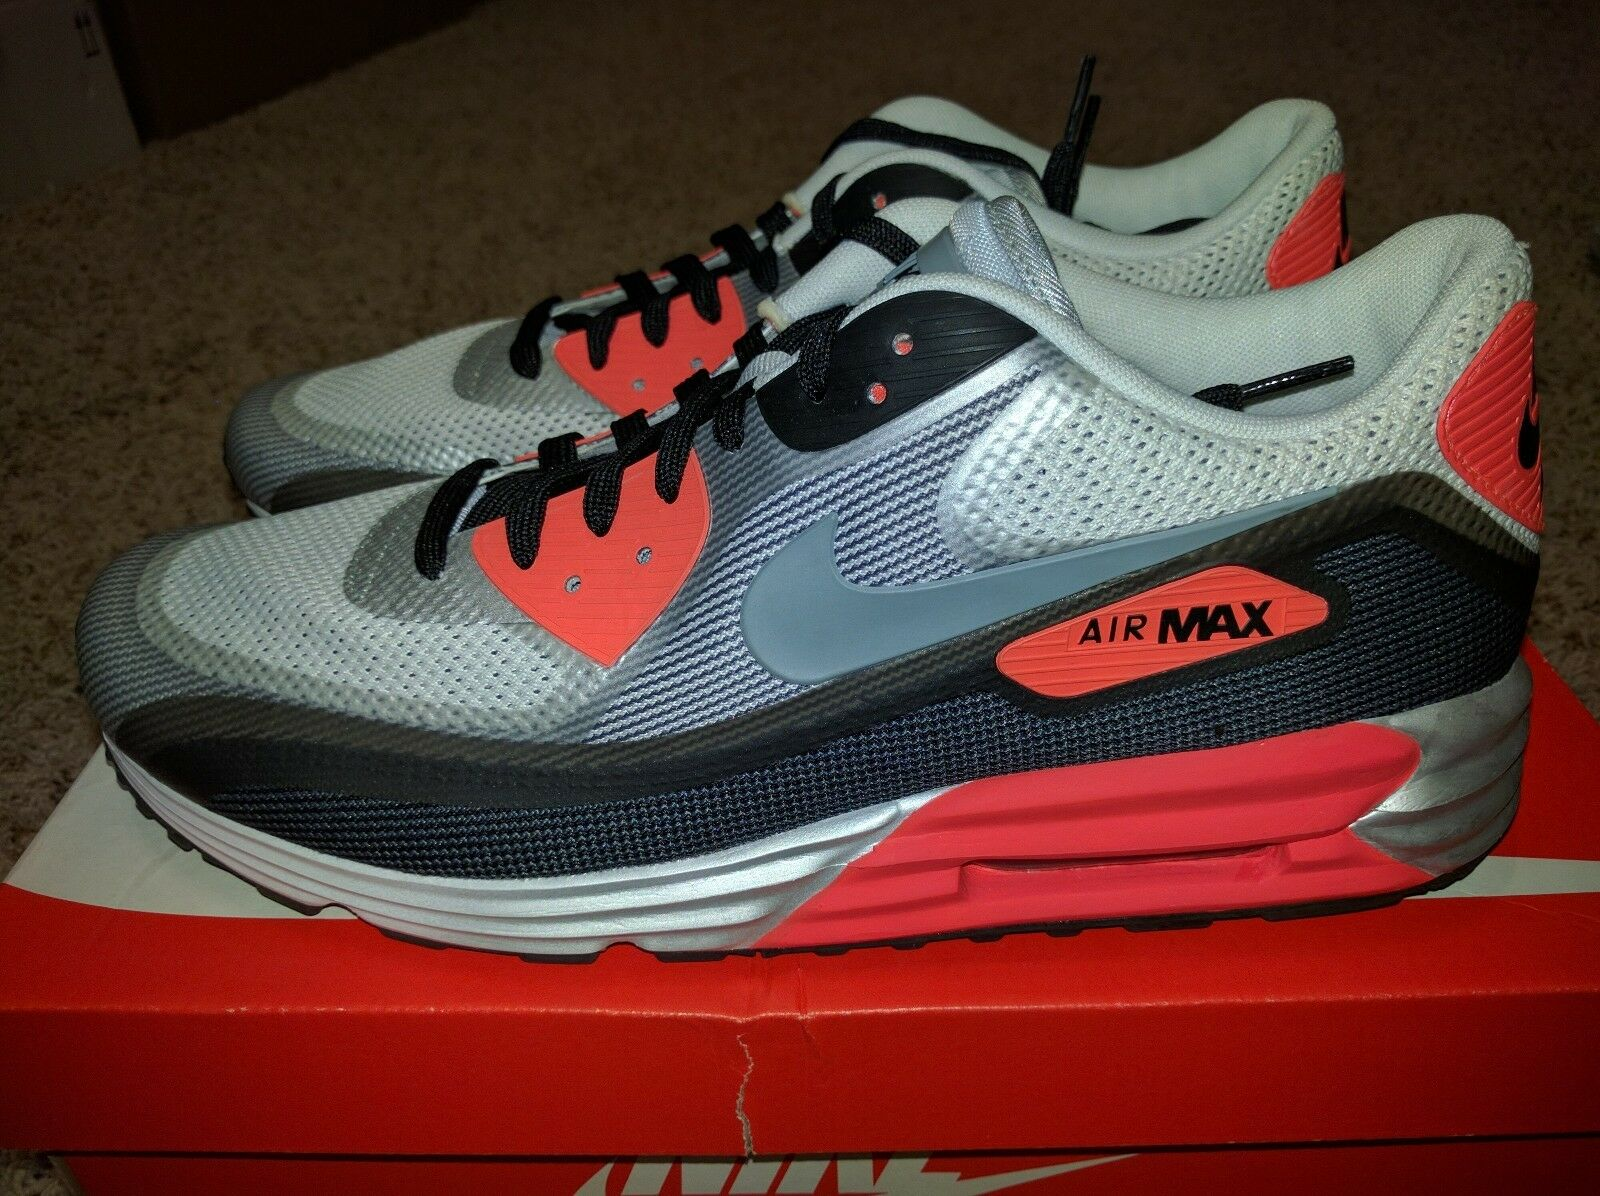 sports shoes 2dcd8 2a8b1 Nike Air Max Lunar90 Infrared Infrared Infrared White Black Hyperfuse Ultra  C3.0 All